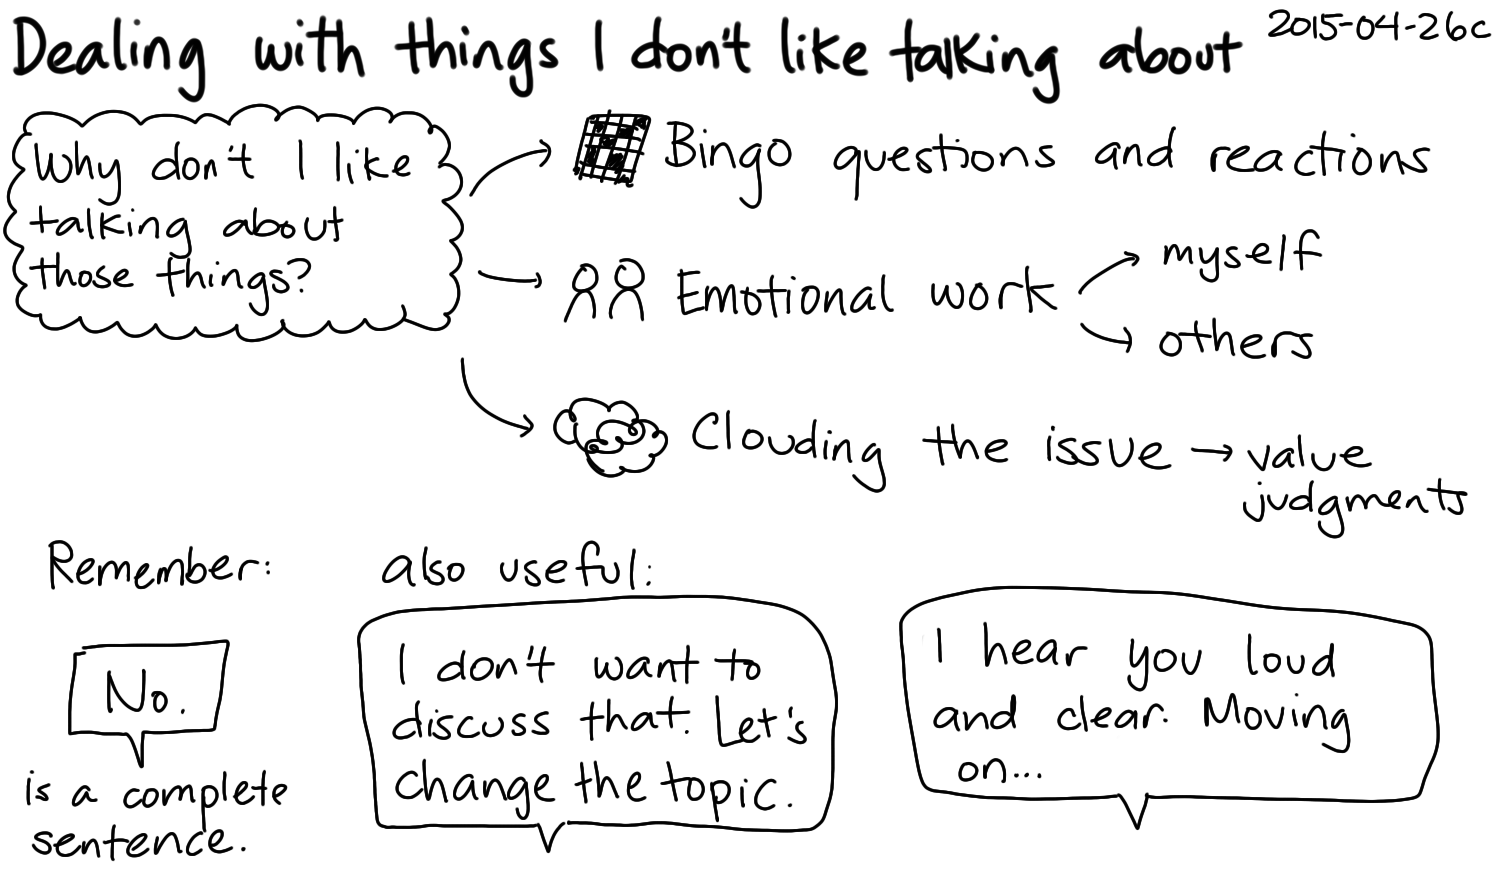 2015-04-26c Dealing with things I don't like talking about -- index card #anxiety #conversation.png